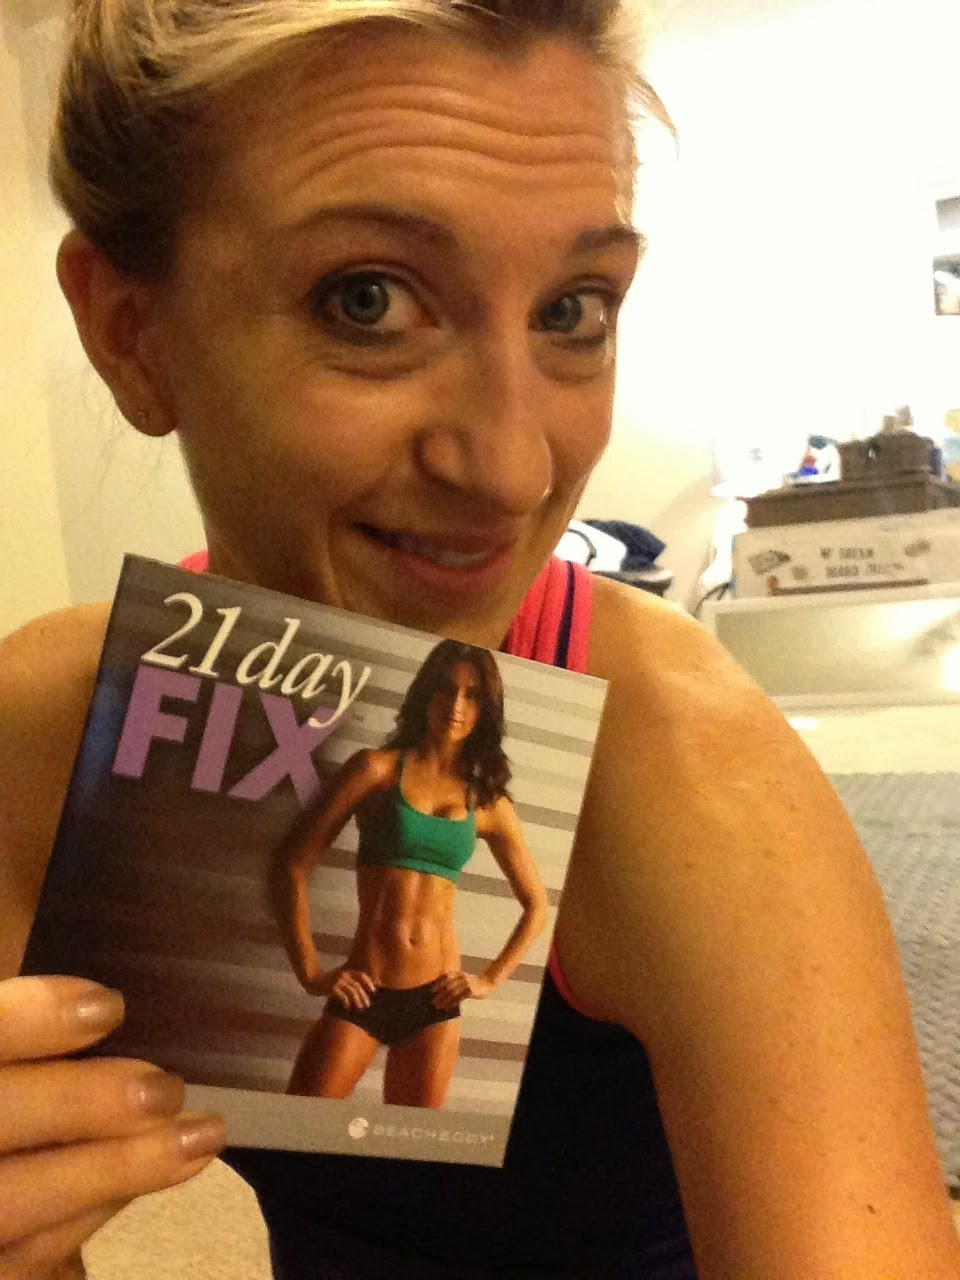 21 Day Fix, Day 1